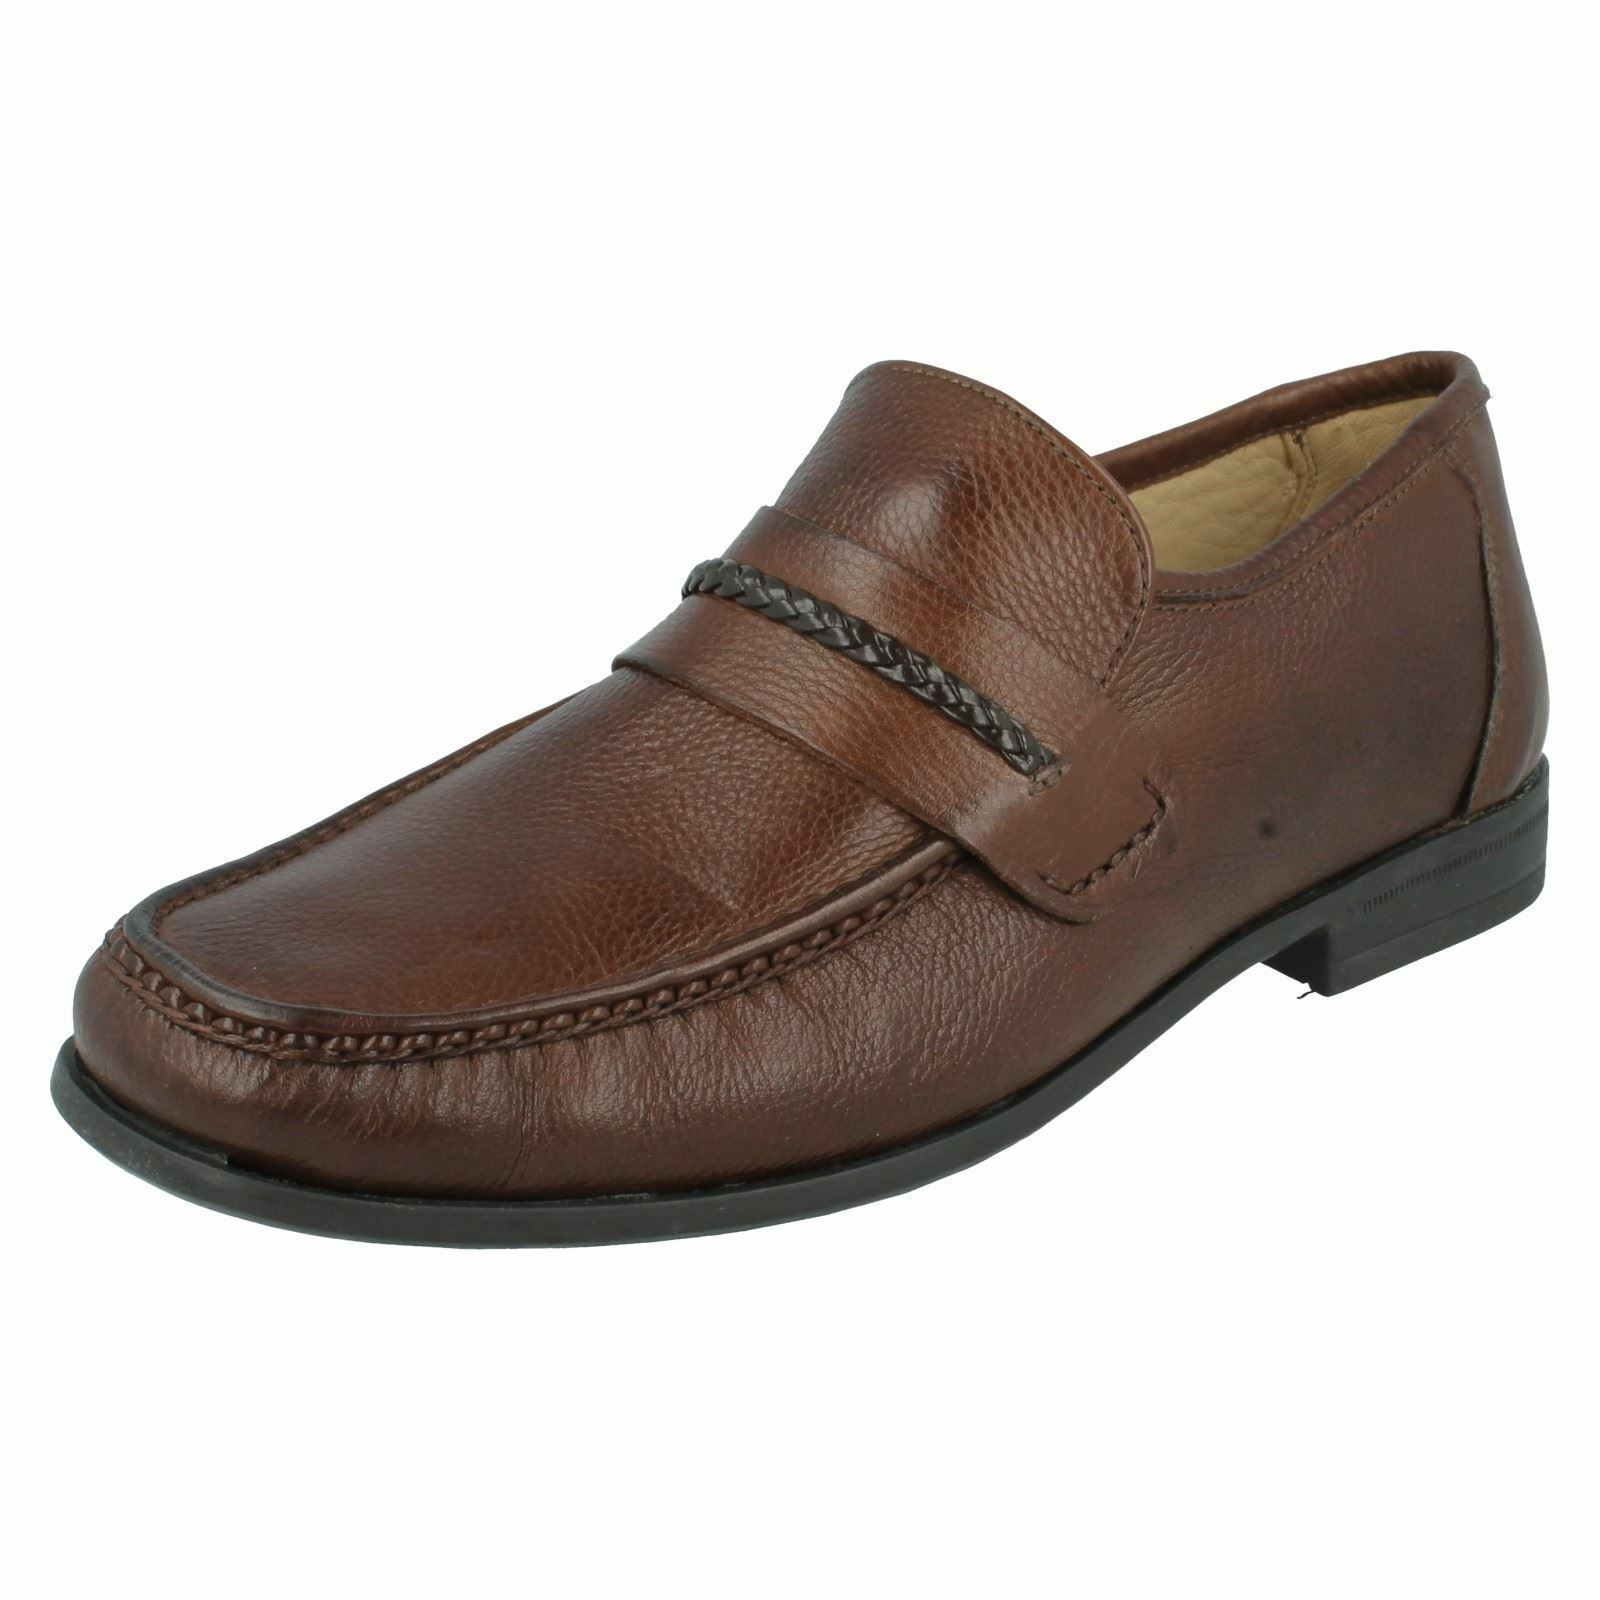 Mens GASPAR Braun slip on schuhe by Anatomic & co £100.00